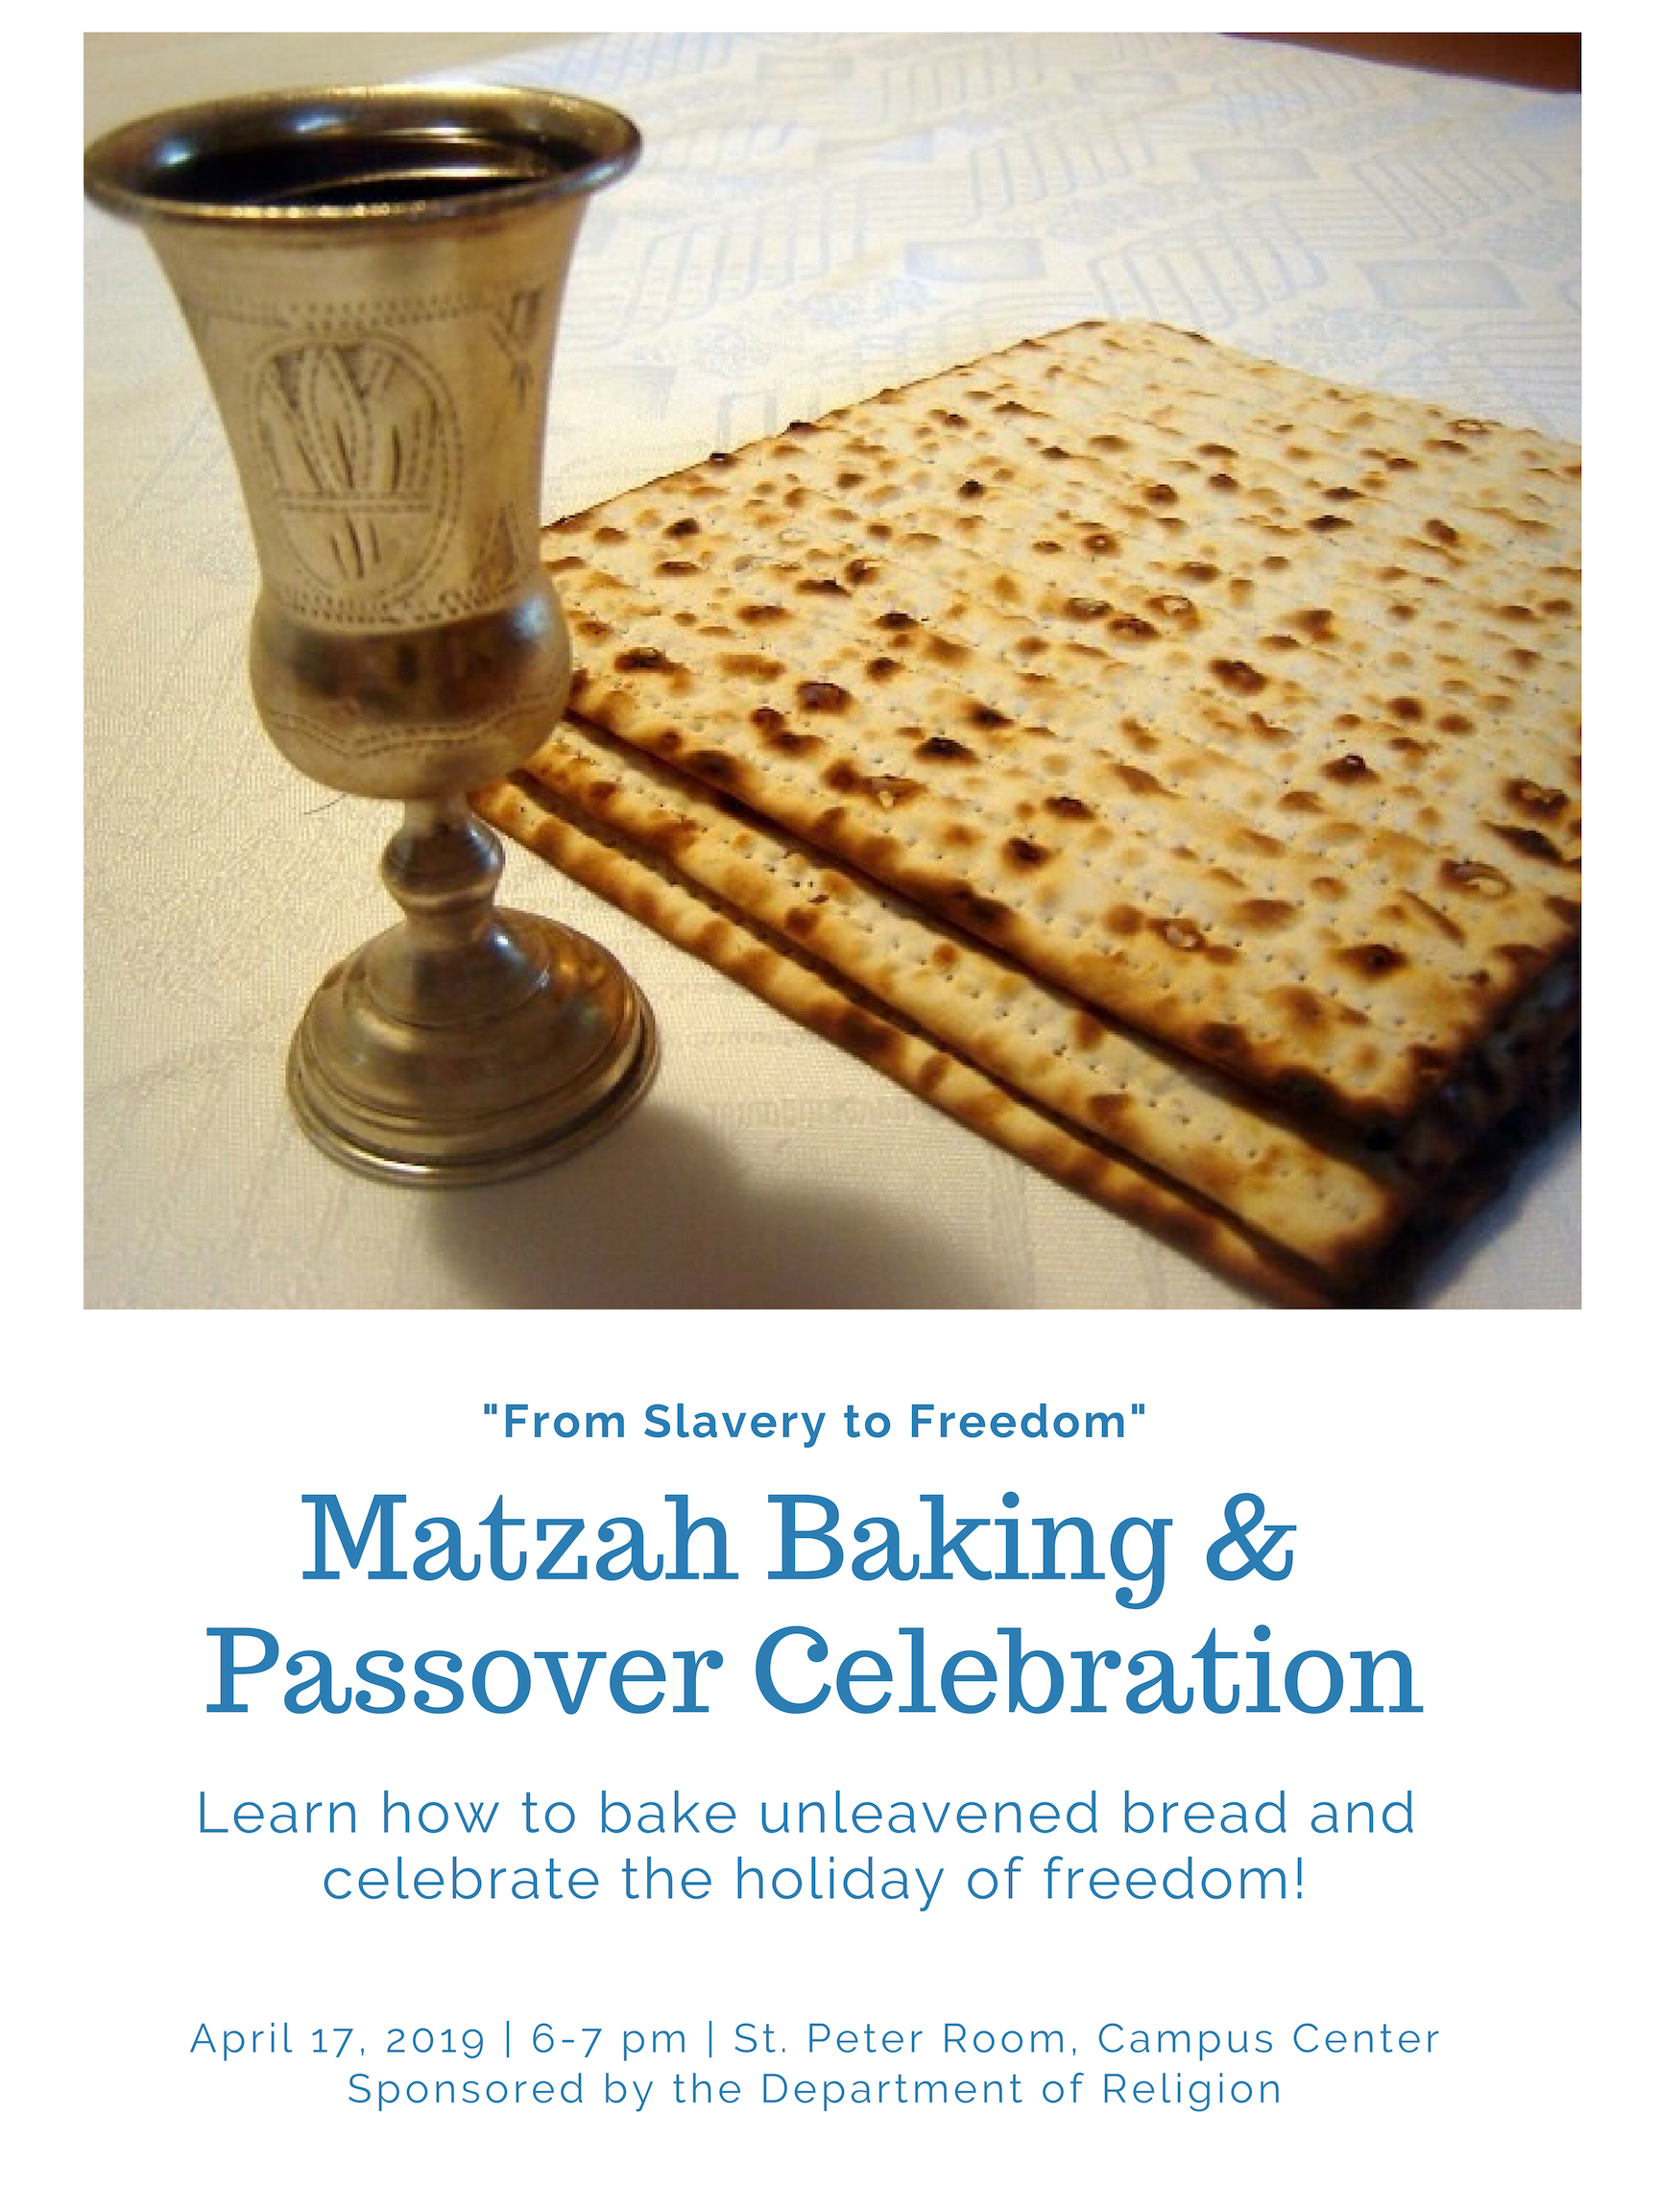 Matzah Baking and Passover Celebration (April 17, 2019).jpg